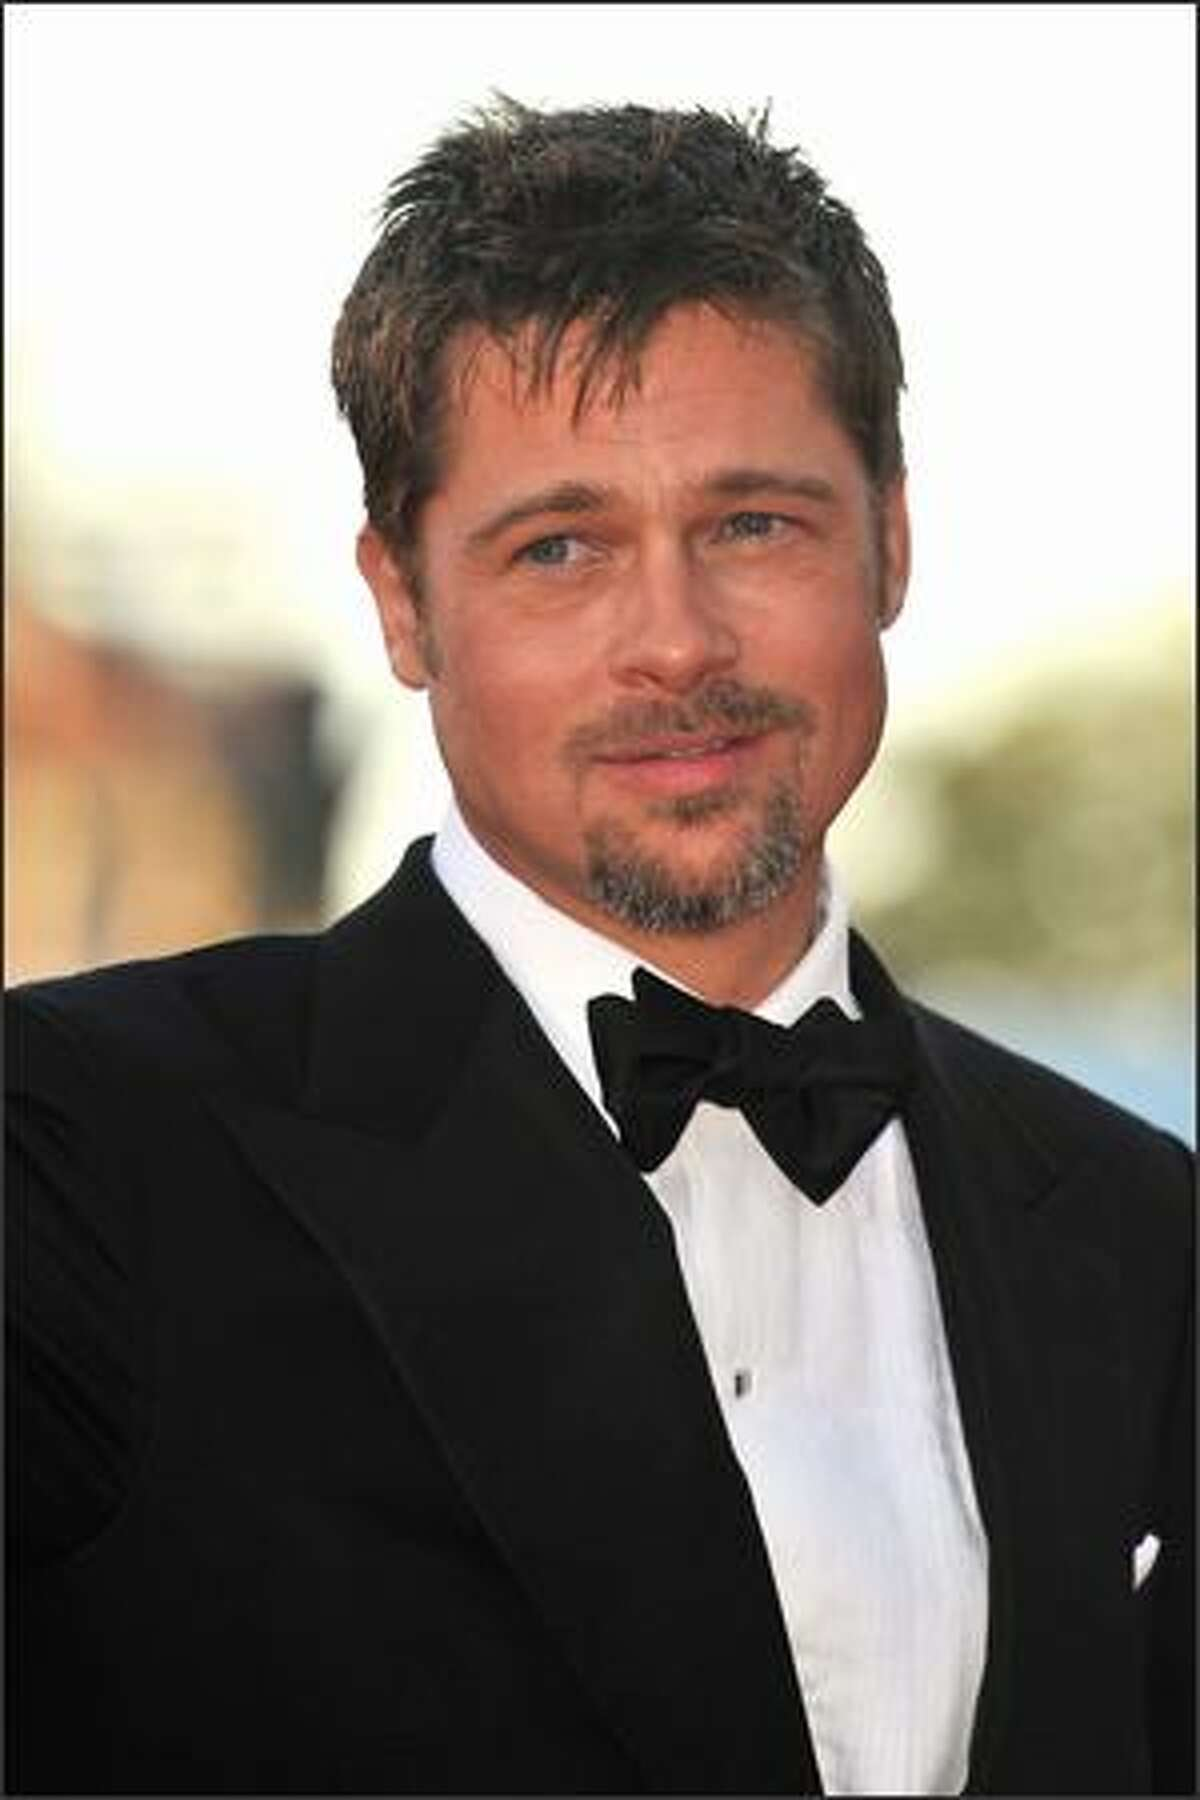 Actor Brad Pitt arrives at the opening ceremony and